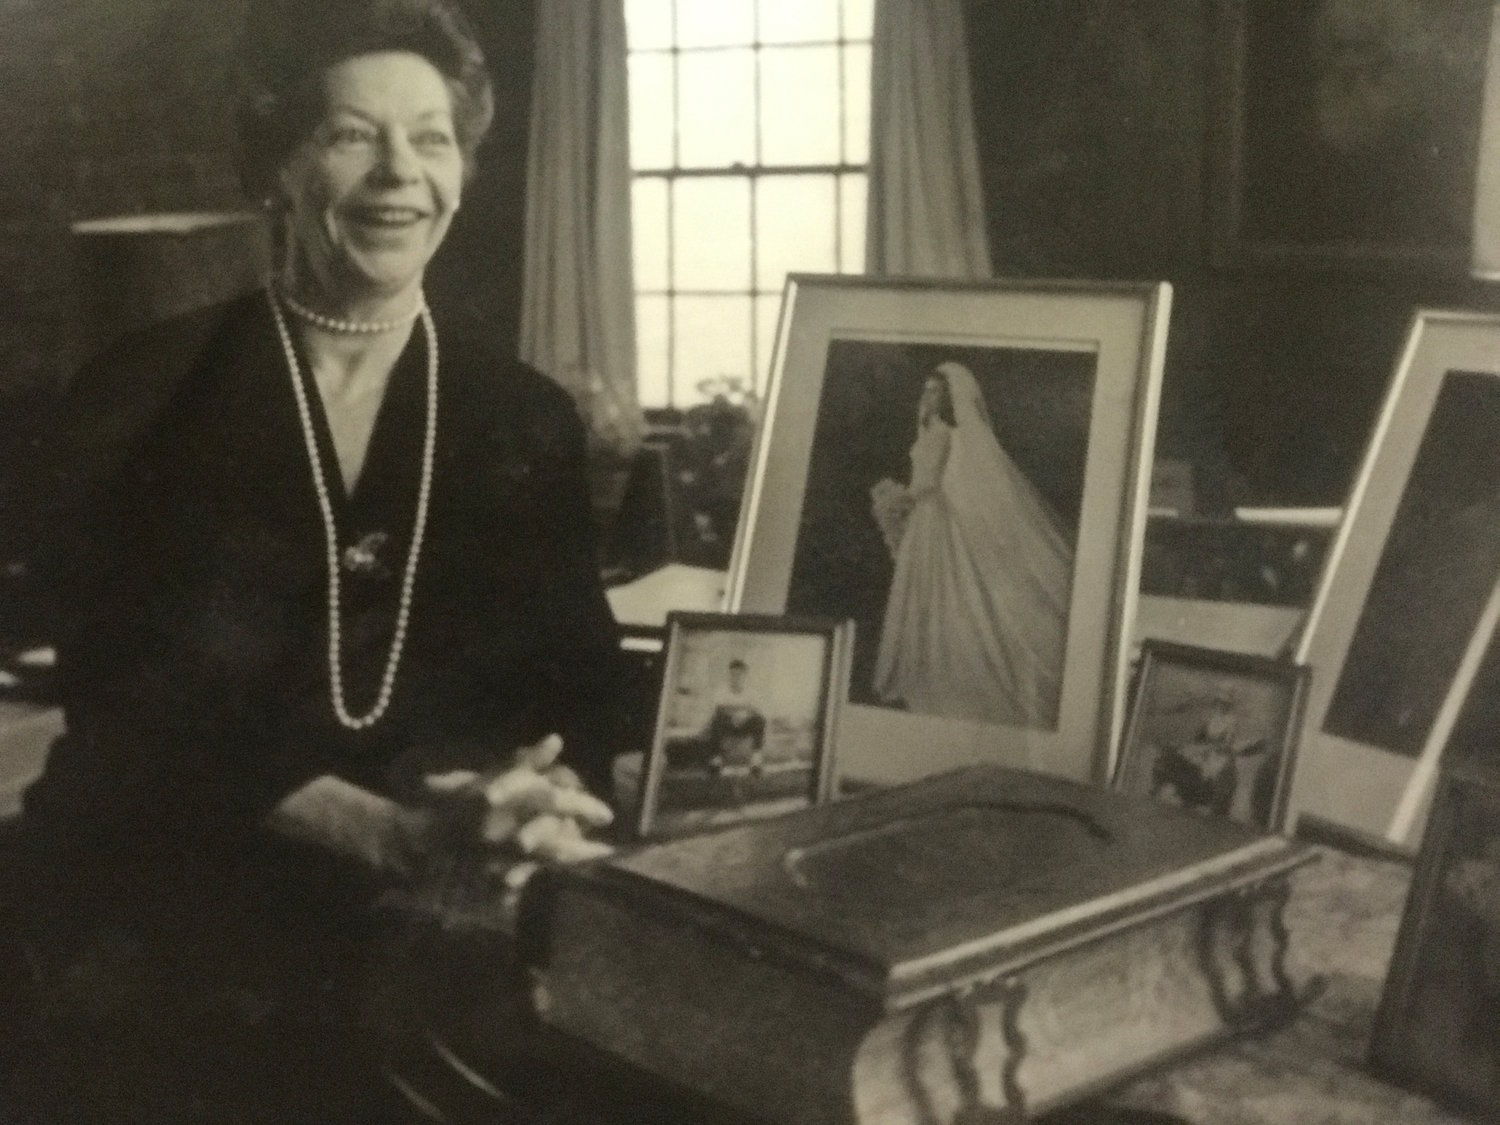 Carol Hill Lamb displayed the Lincoln Bible on the piano in her Oyster Bay Cove home until her death in 1994. This photo was taken in 1984.